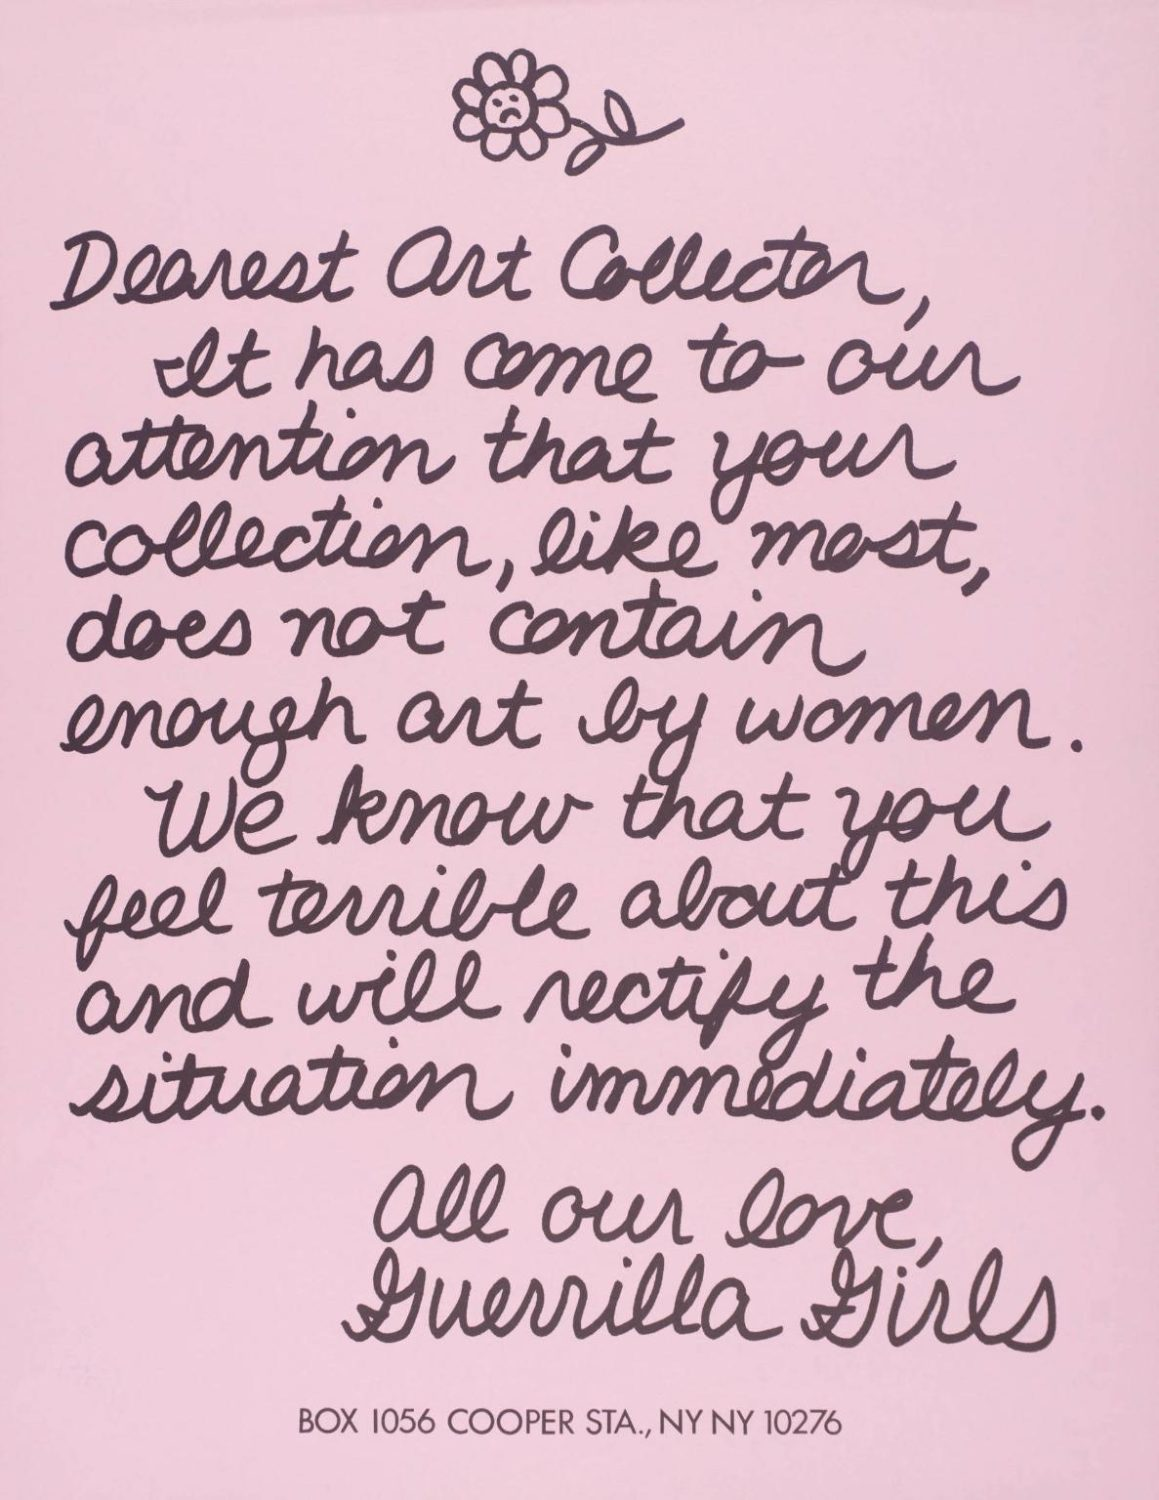 Collecting Art by Women - AWARE Artistes femmes / women artists